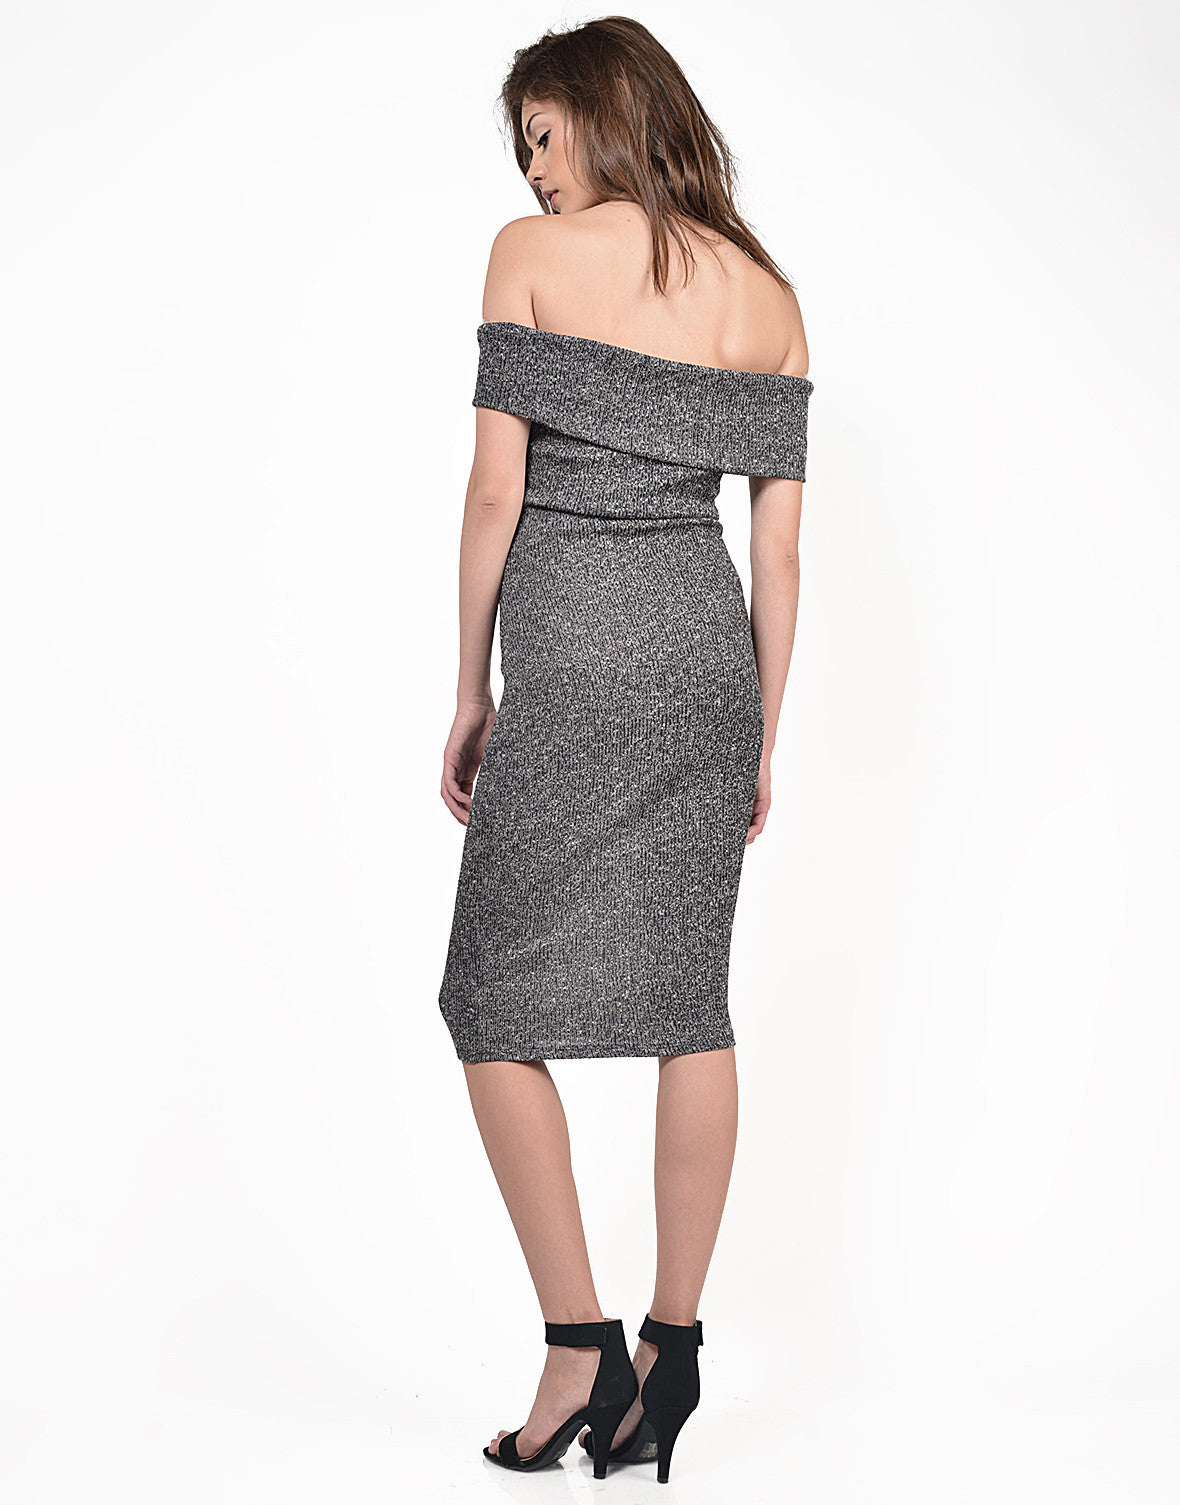 Back View of Fold Over Strapless Midi Dress